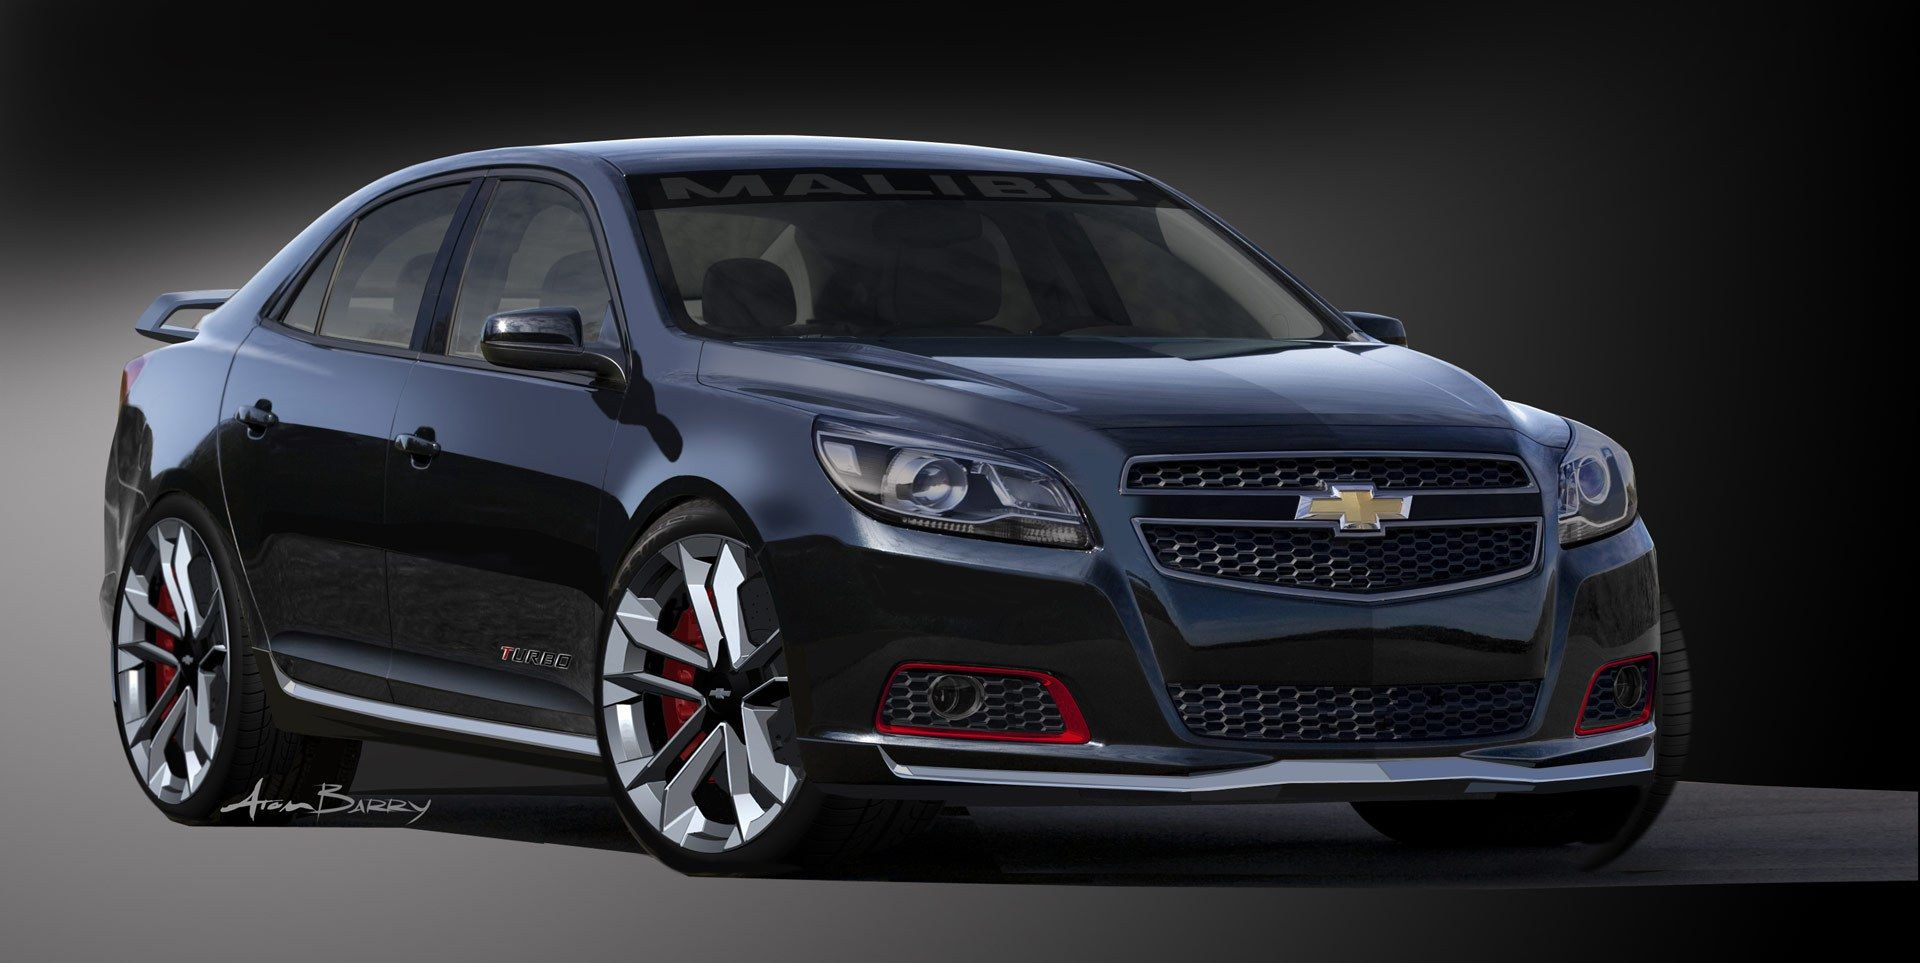 29 All New 2020 Chevy Malibu Wallpaper